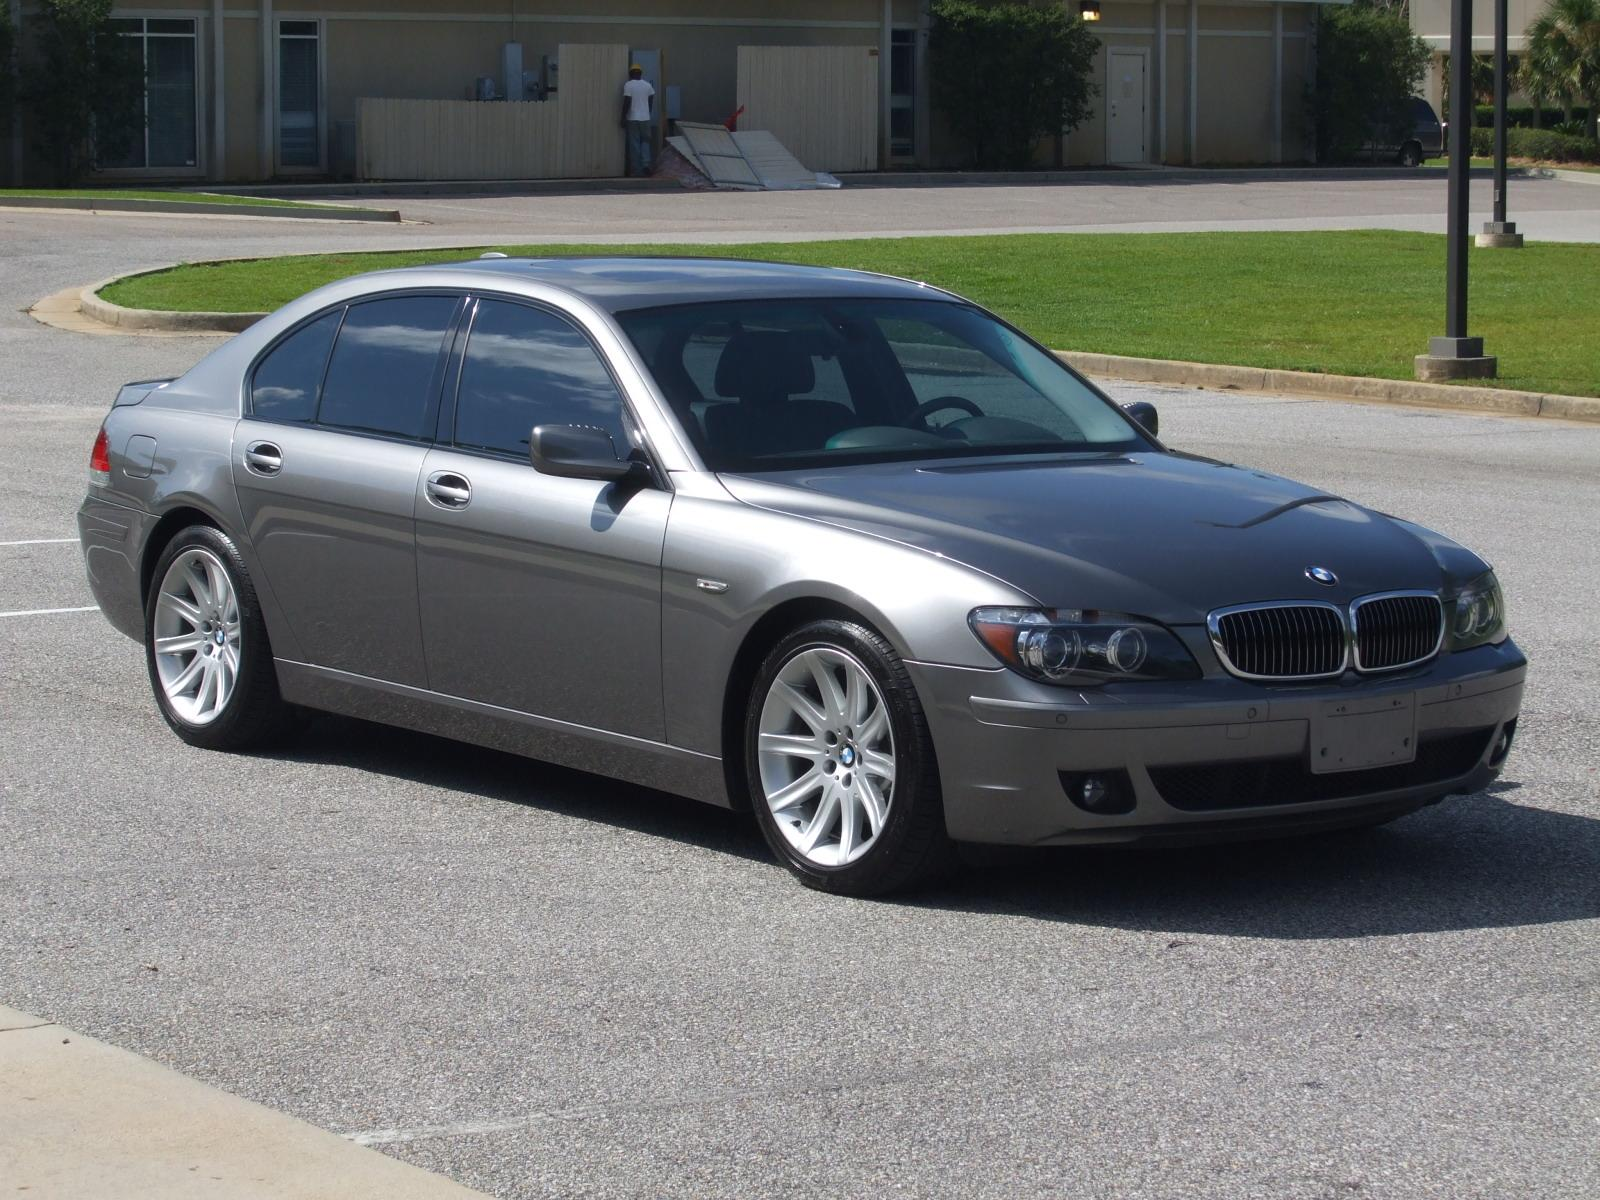 2006 bmw 7 series information and photos zombiedrive. Black Bedroom Furniture Sets. Home Design Ideas